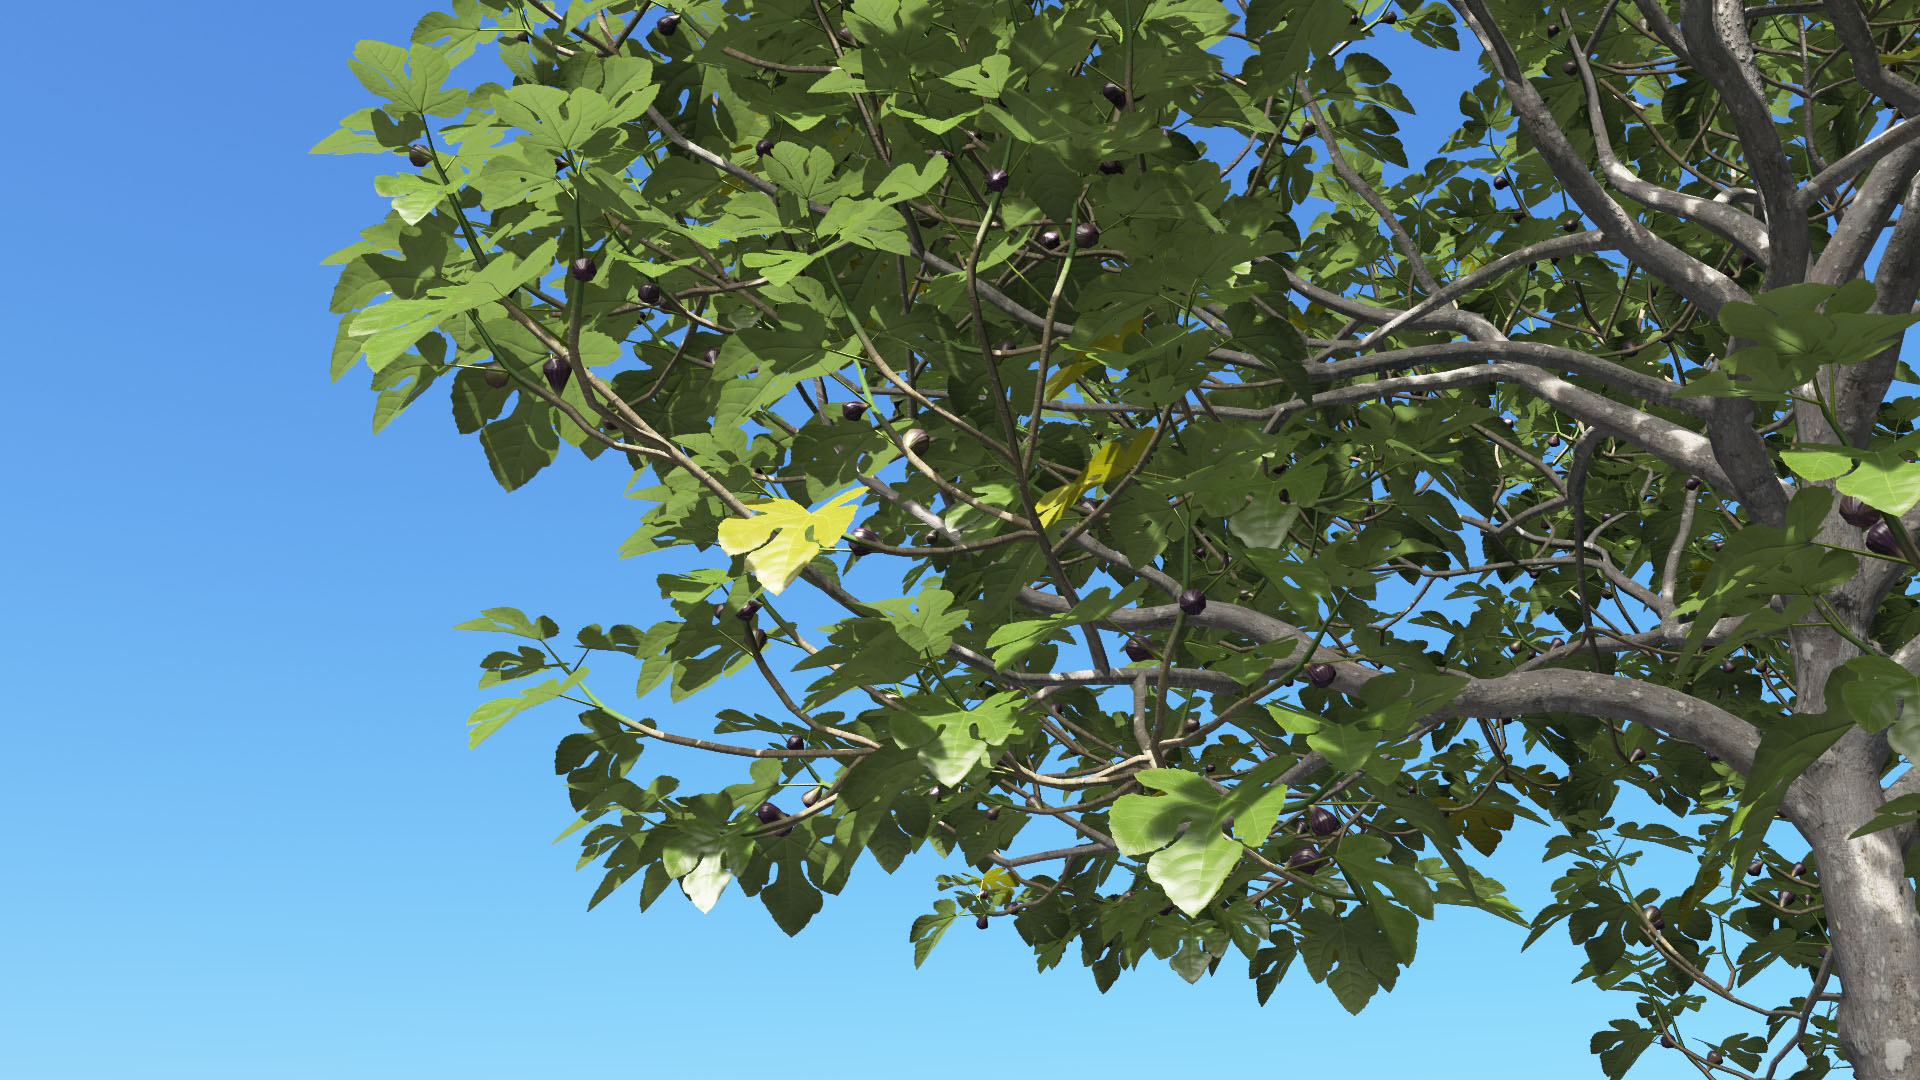 3D model of the Common fig tree Ficus carica close-up